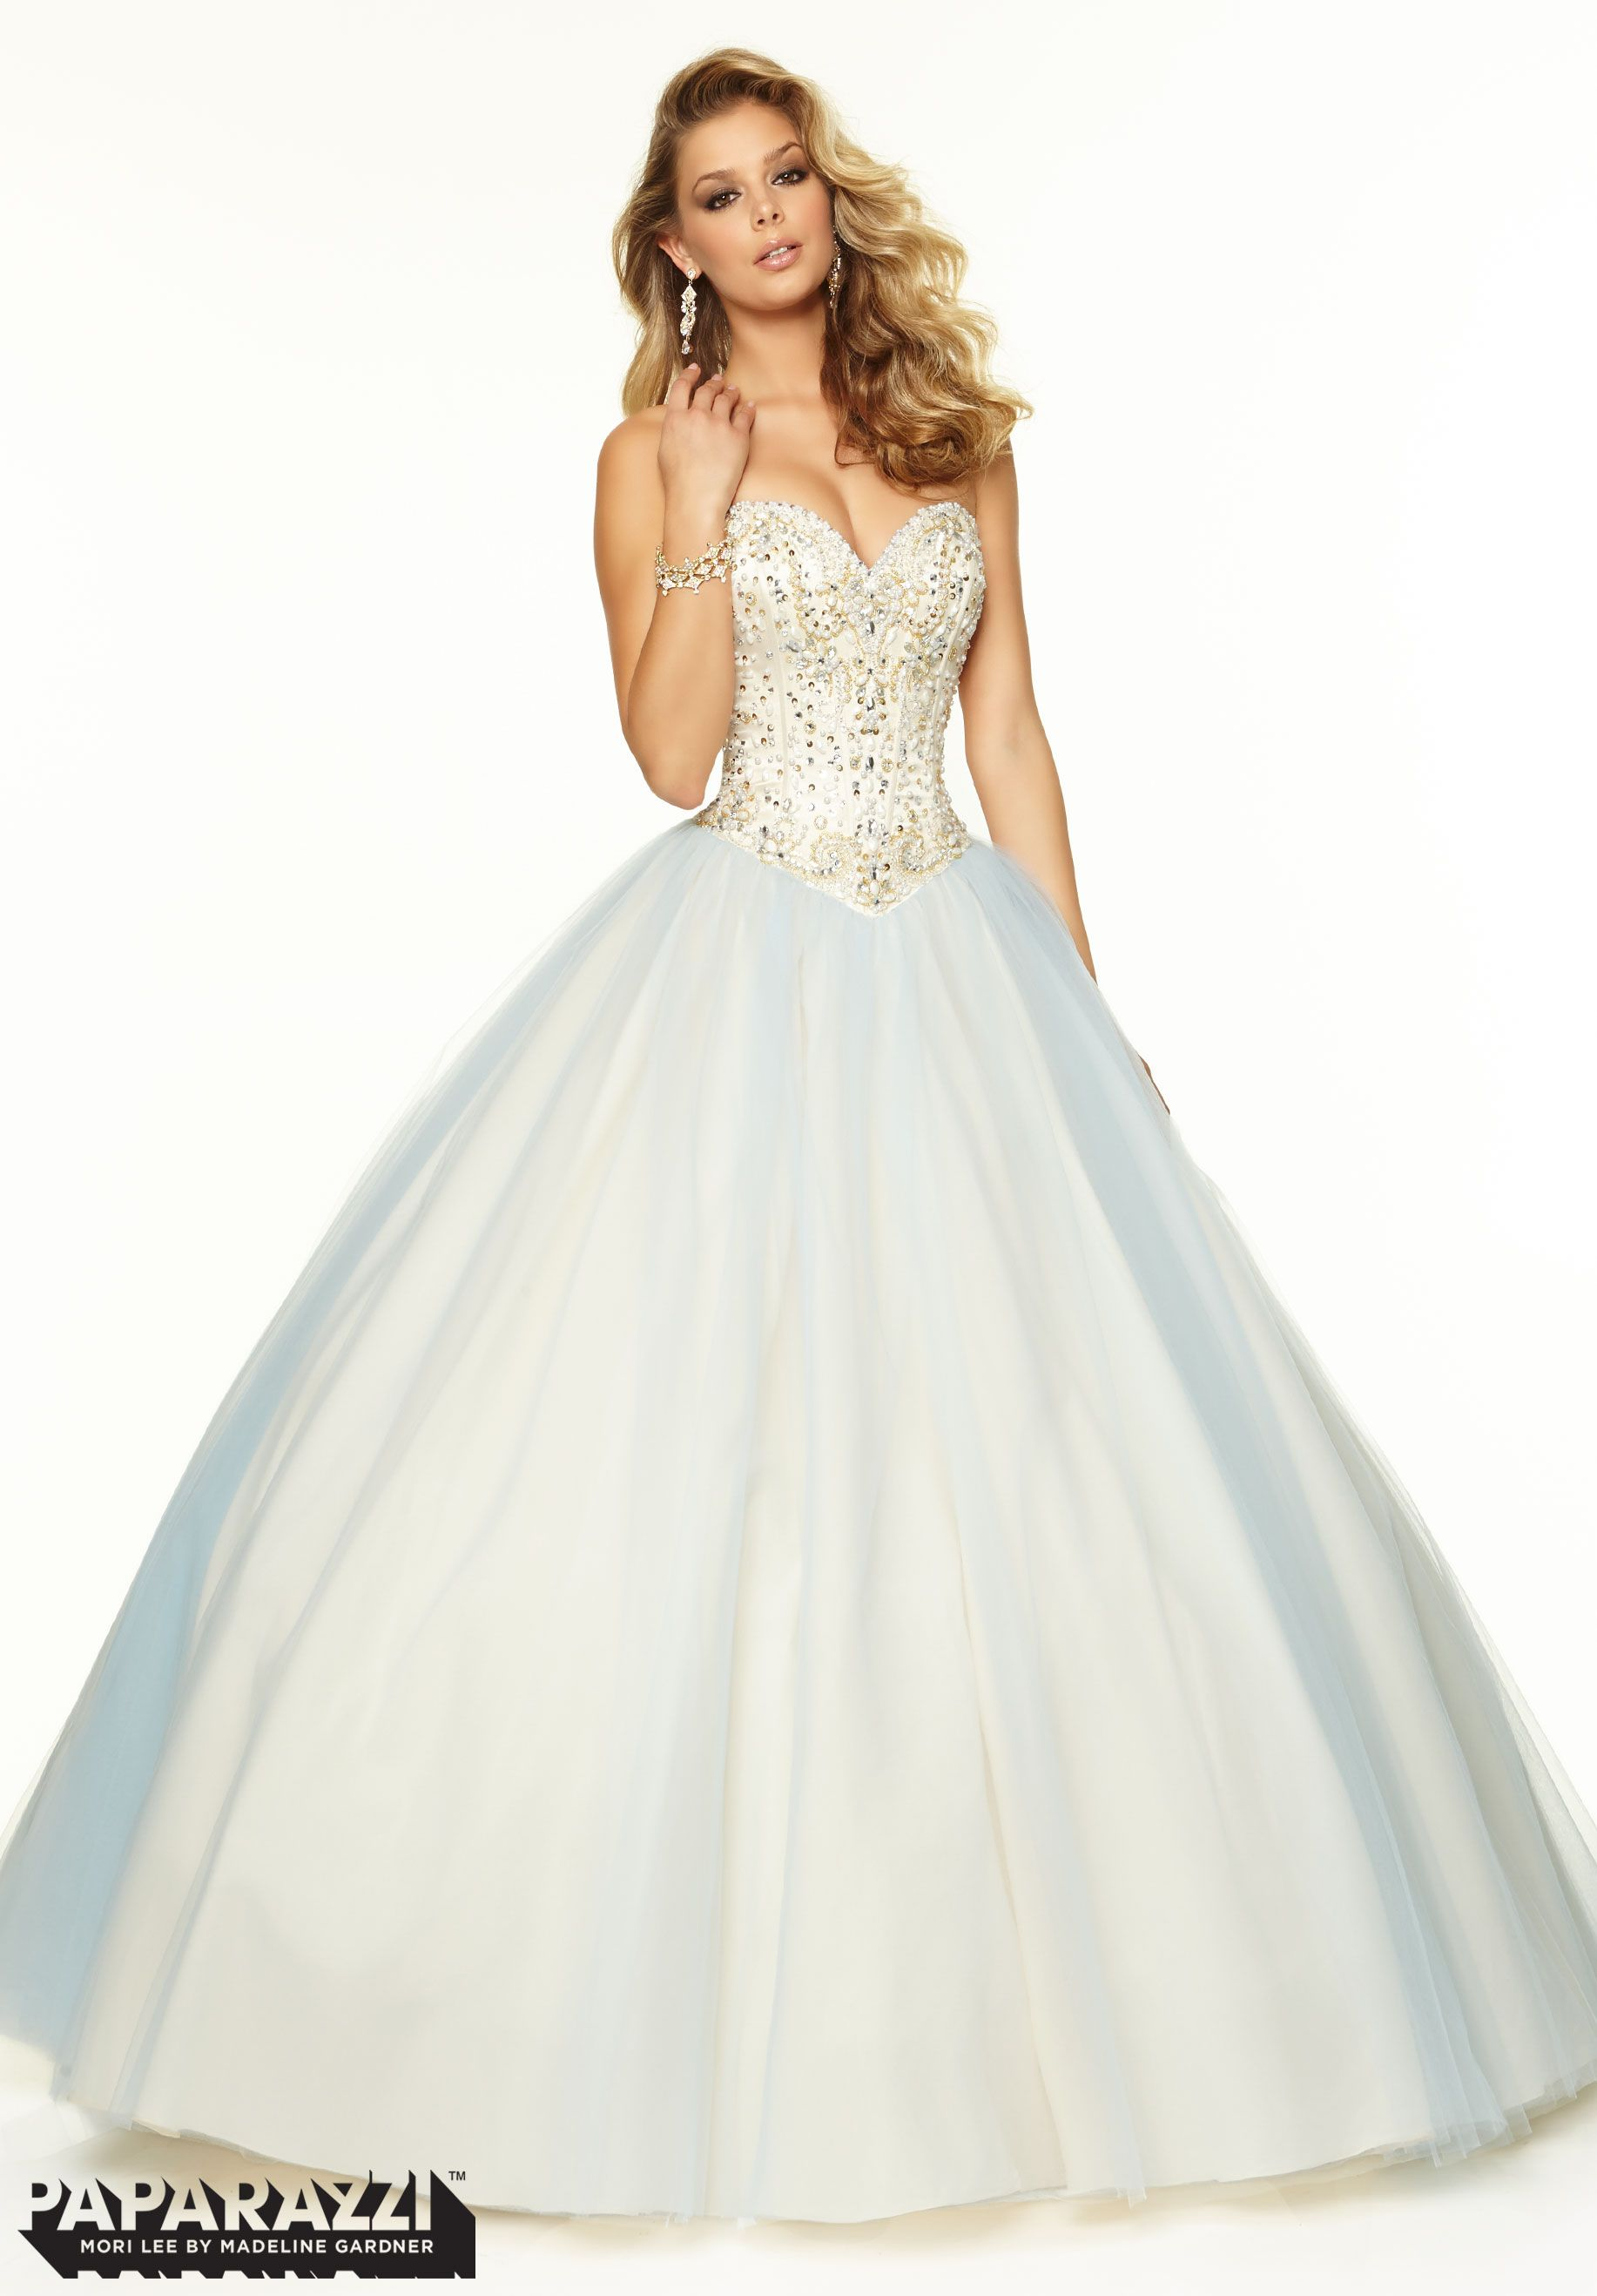 Prom dresses gowns style beaded satin and tulle ballgown